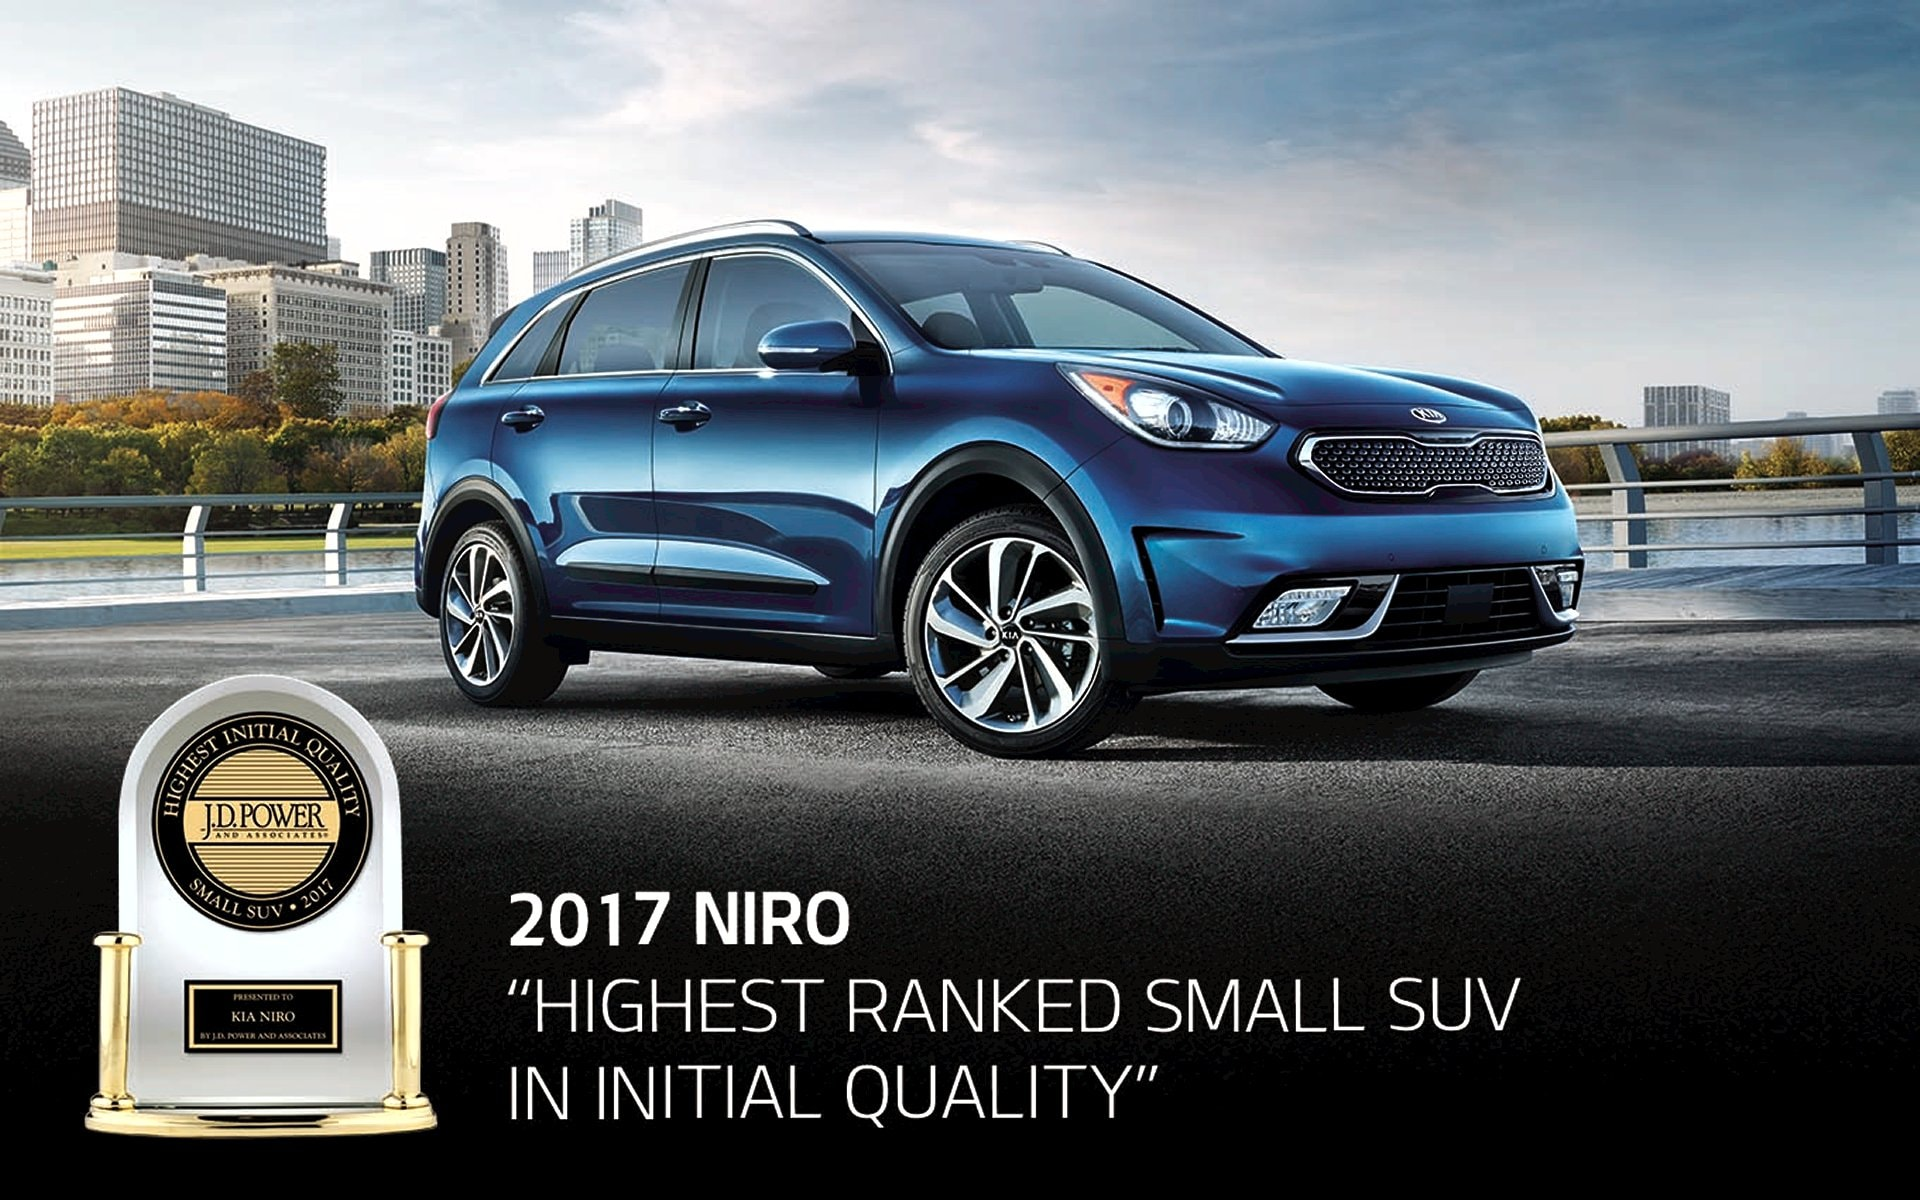 Niro Awards